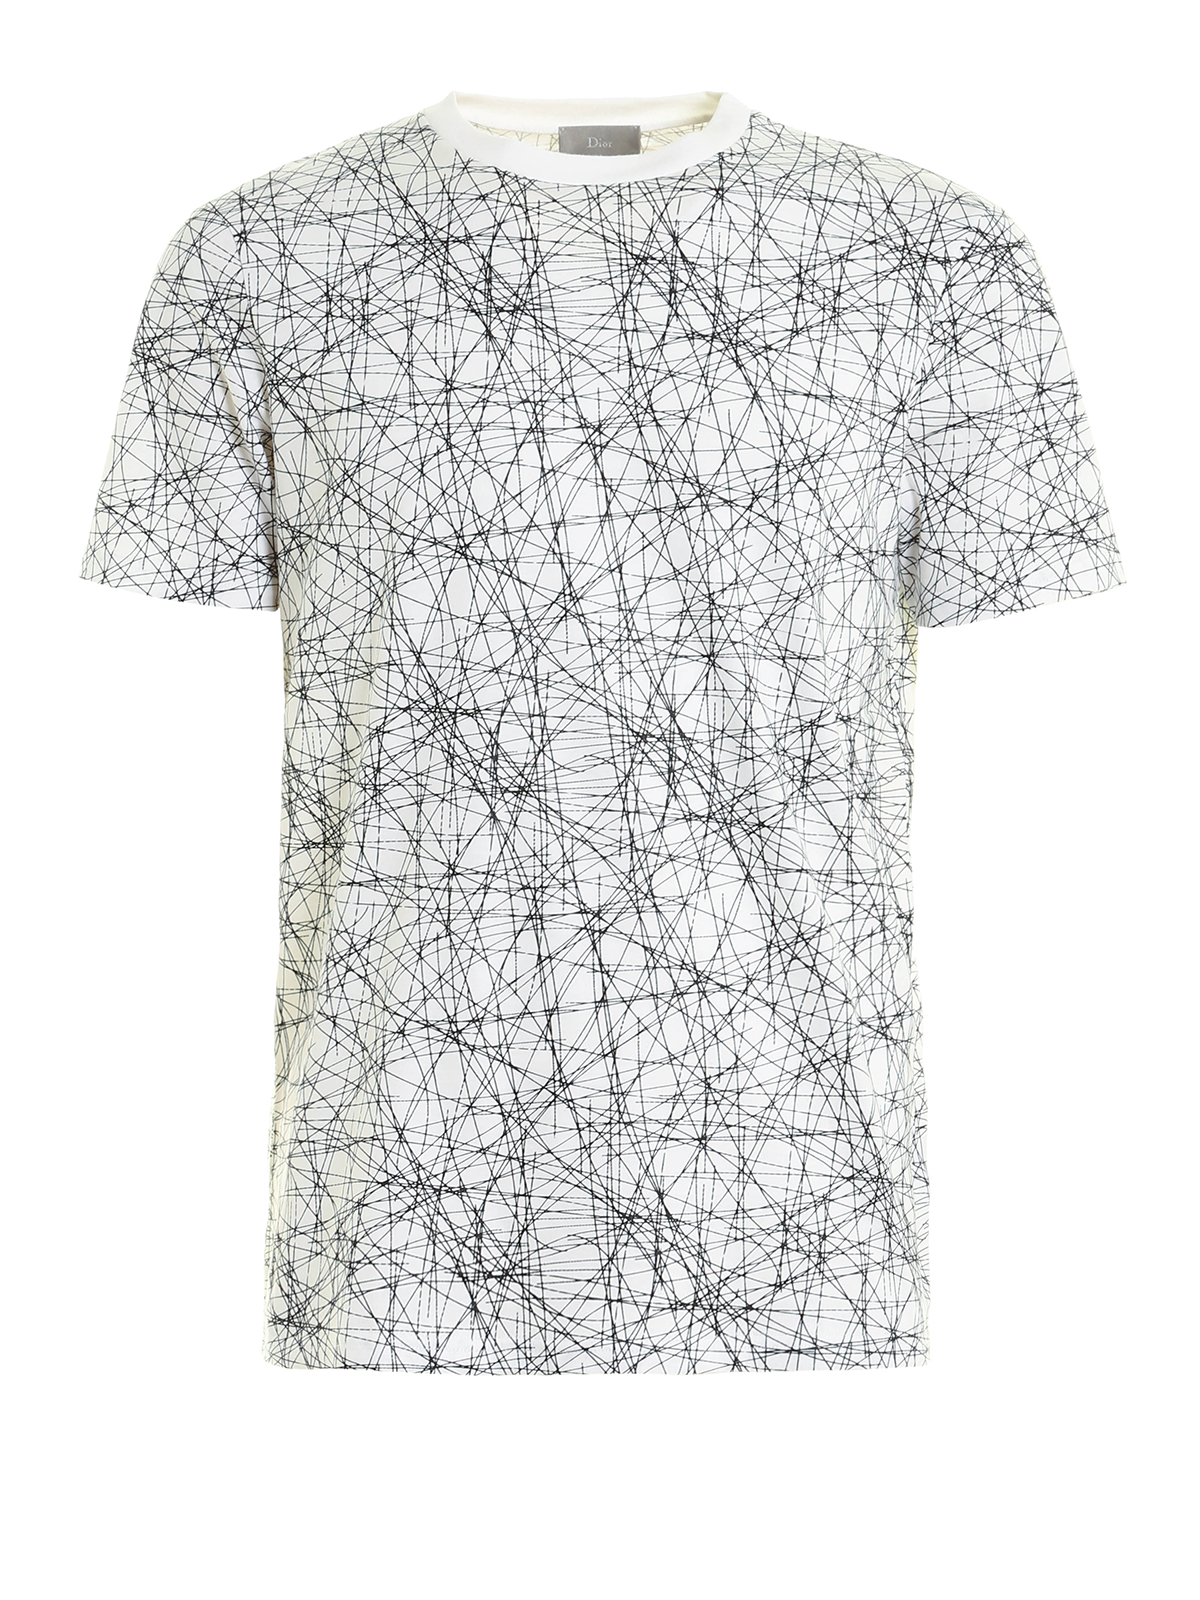 All over print t shirt by dior t shirts ikrix for All over printing t shirts